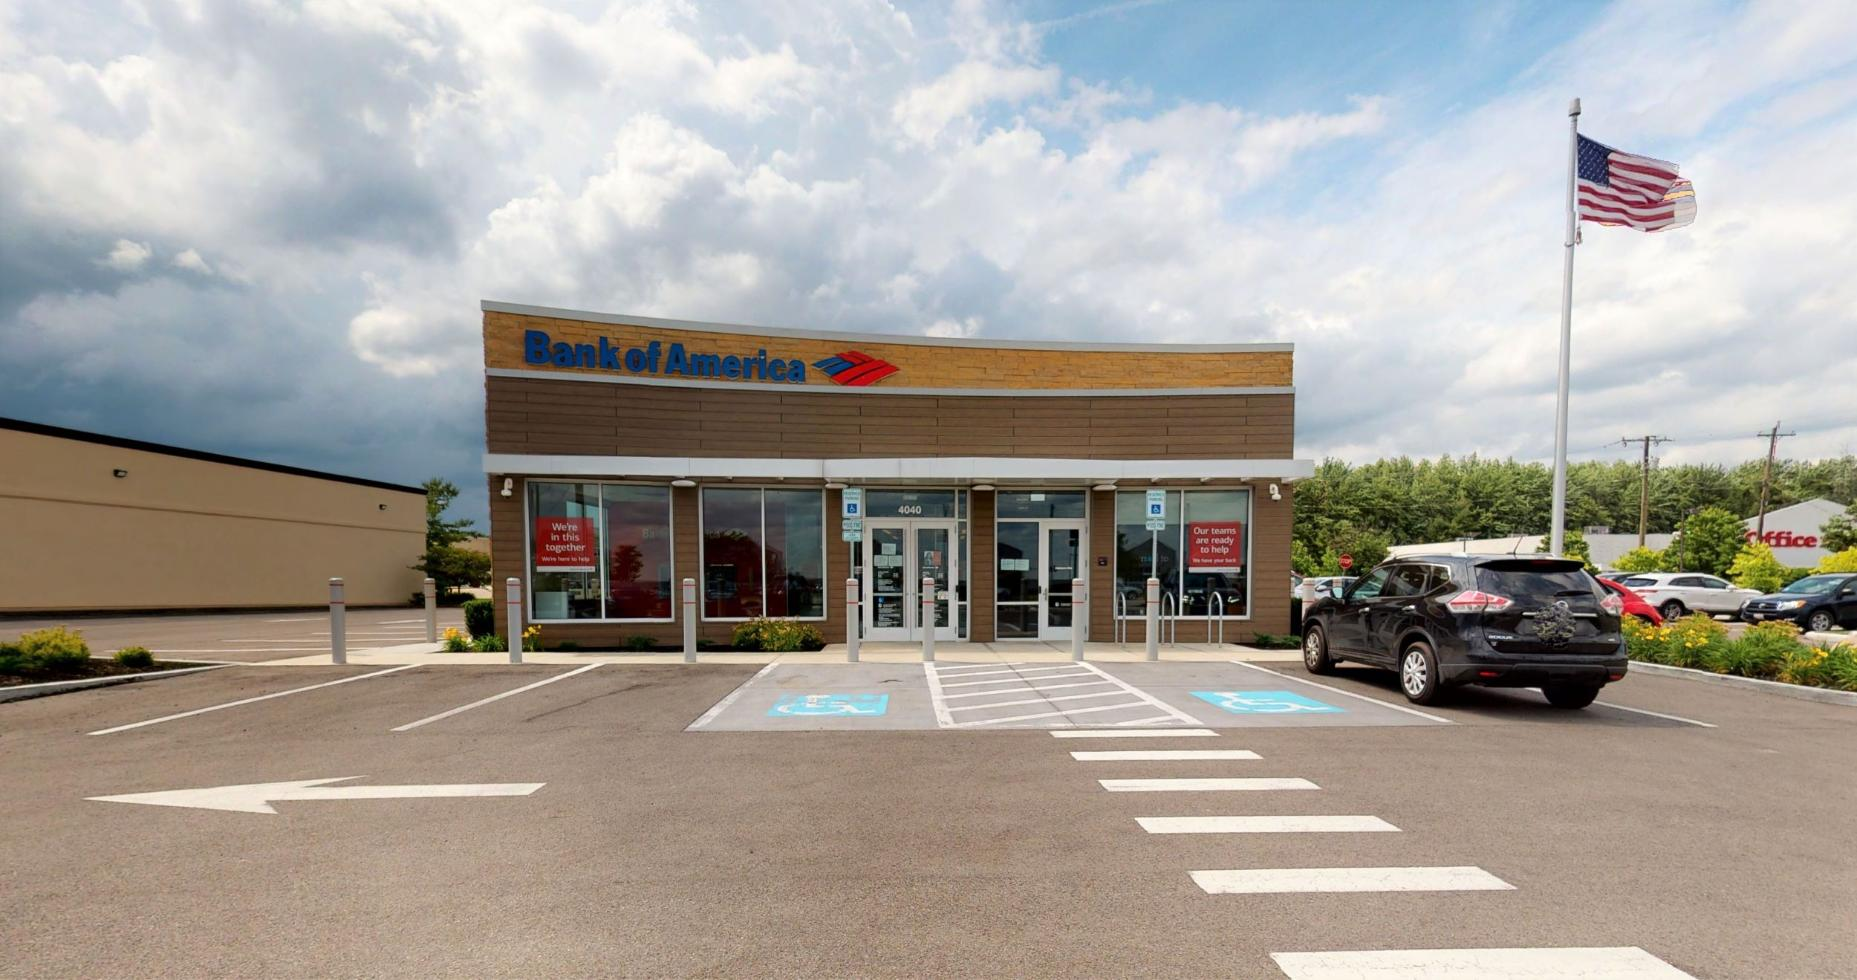 Bank of America financial center with drive-thru ATM   4040 W State Route 22 3, Loveland, OH 45140